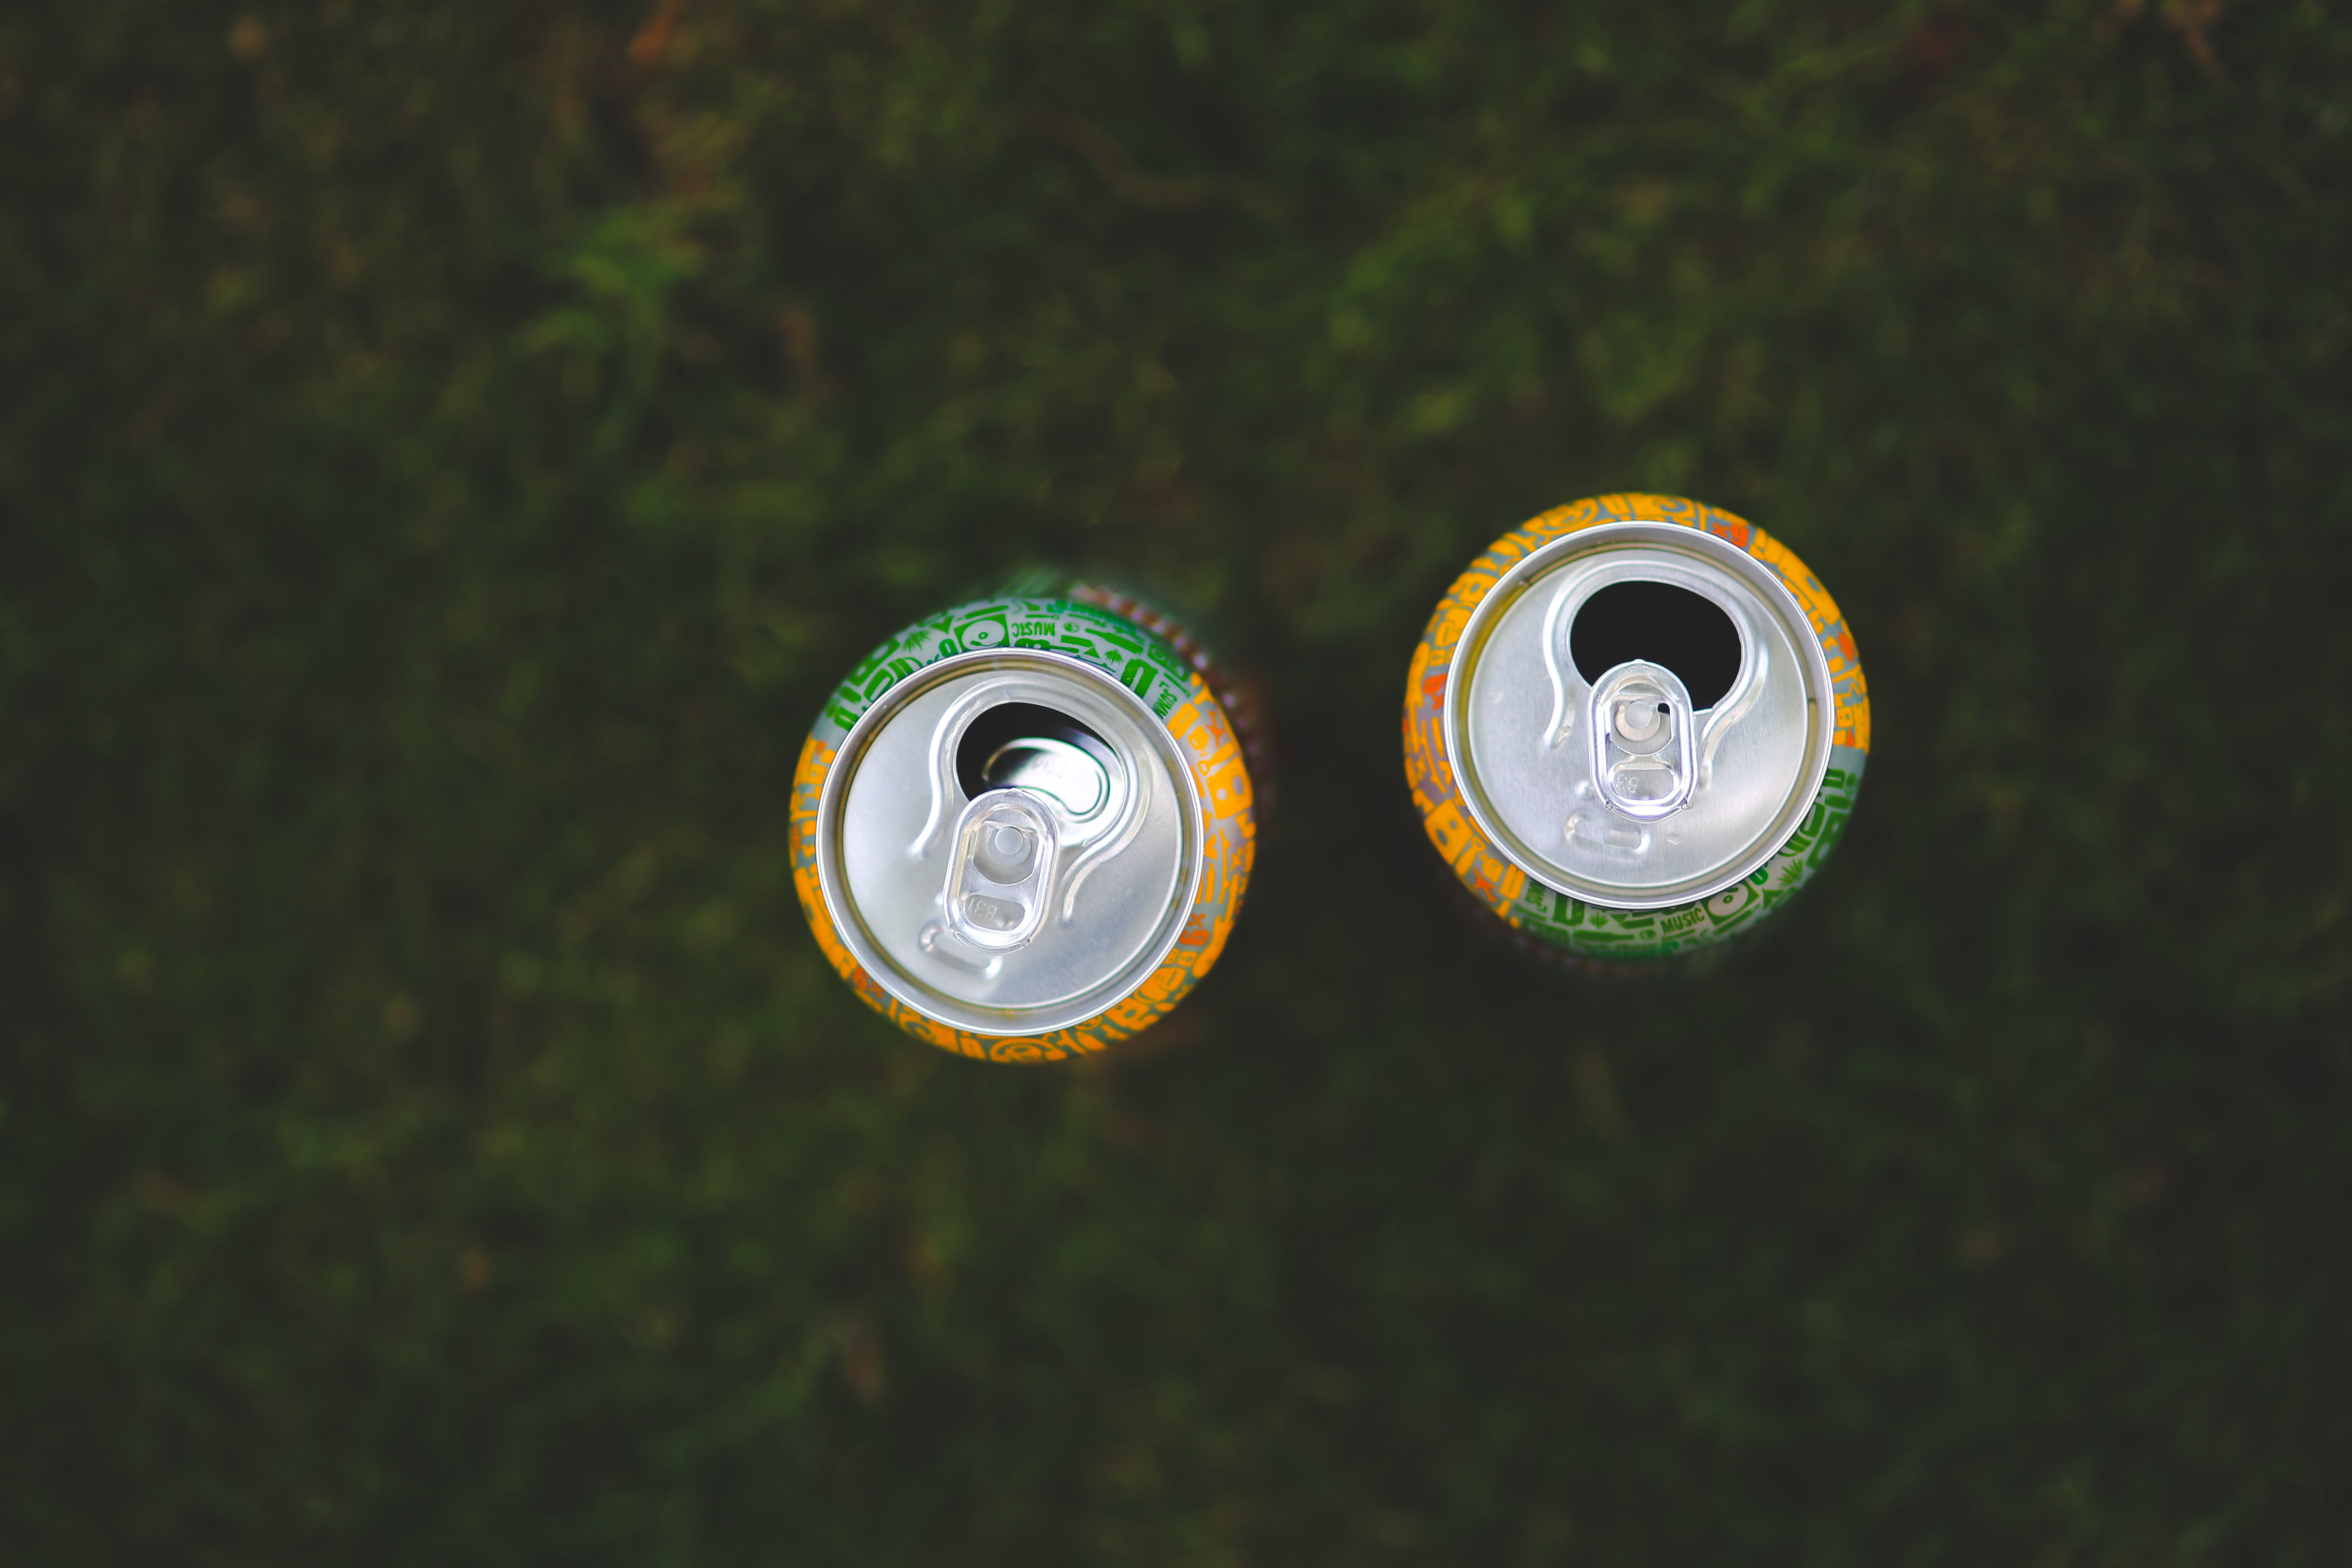 Cans in the grass